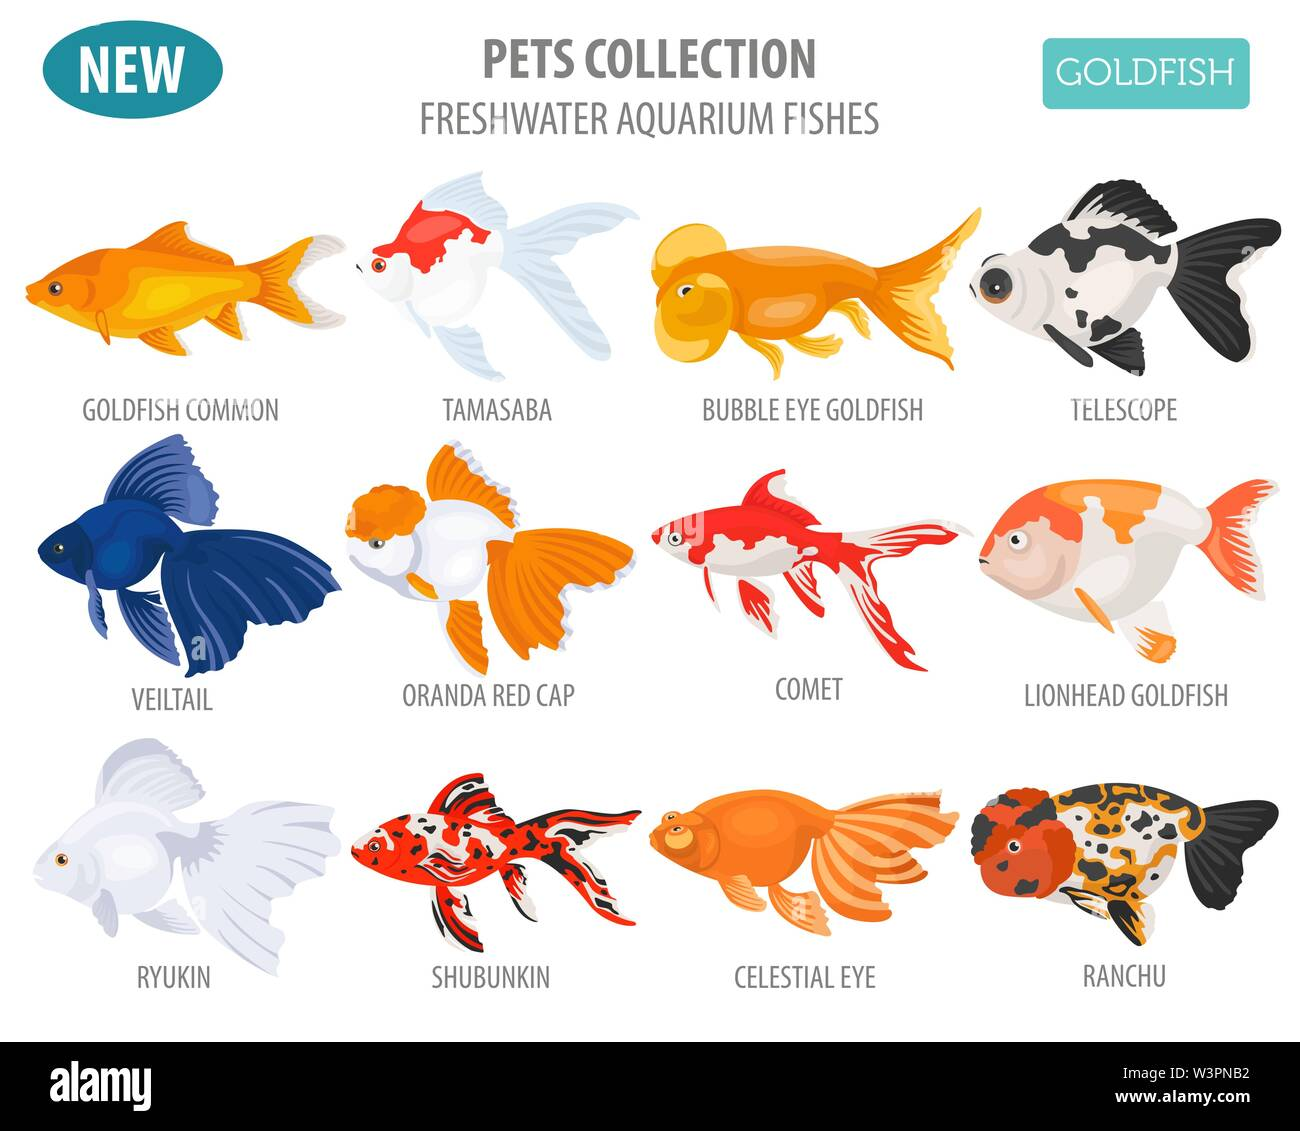 Freshwater aquarium fishes breeds icon set flat style isolated on white. Goldfish. Create own infographic about pets. Vector illustration Stock Vector